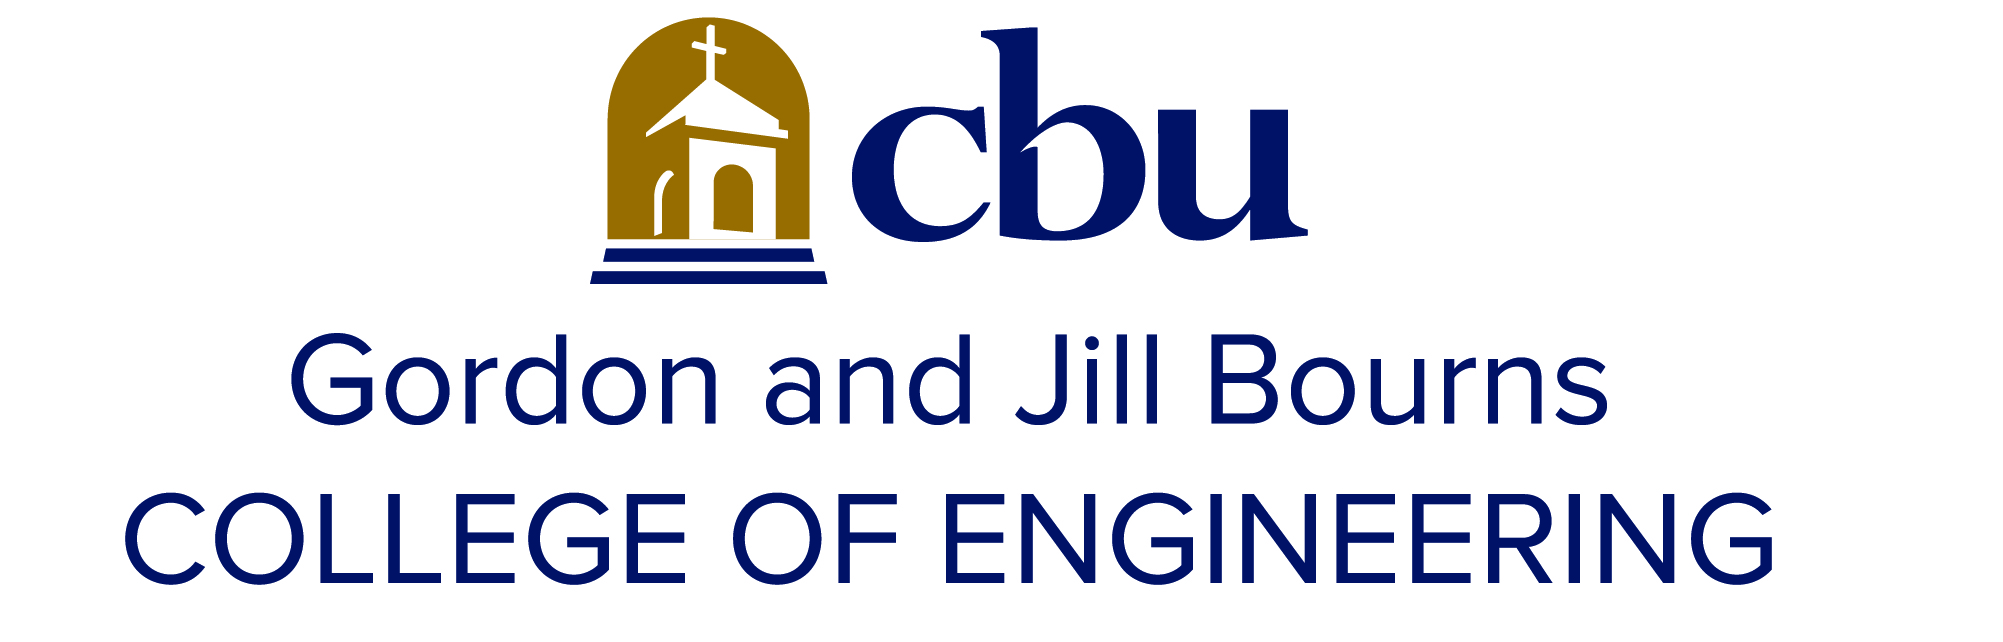 CBU Engineering